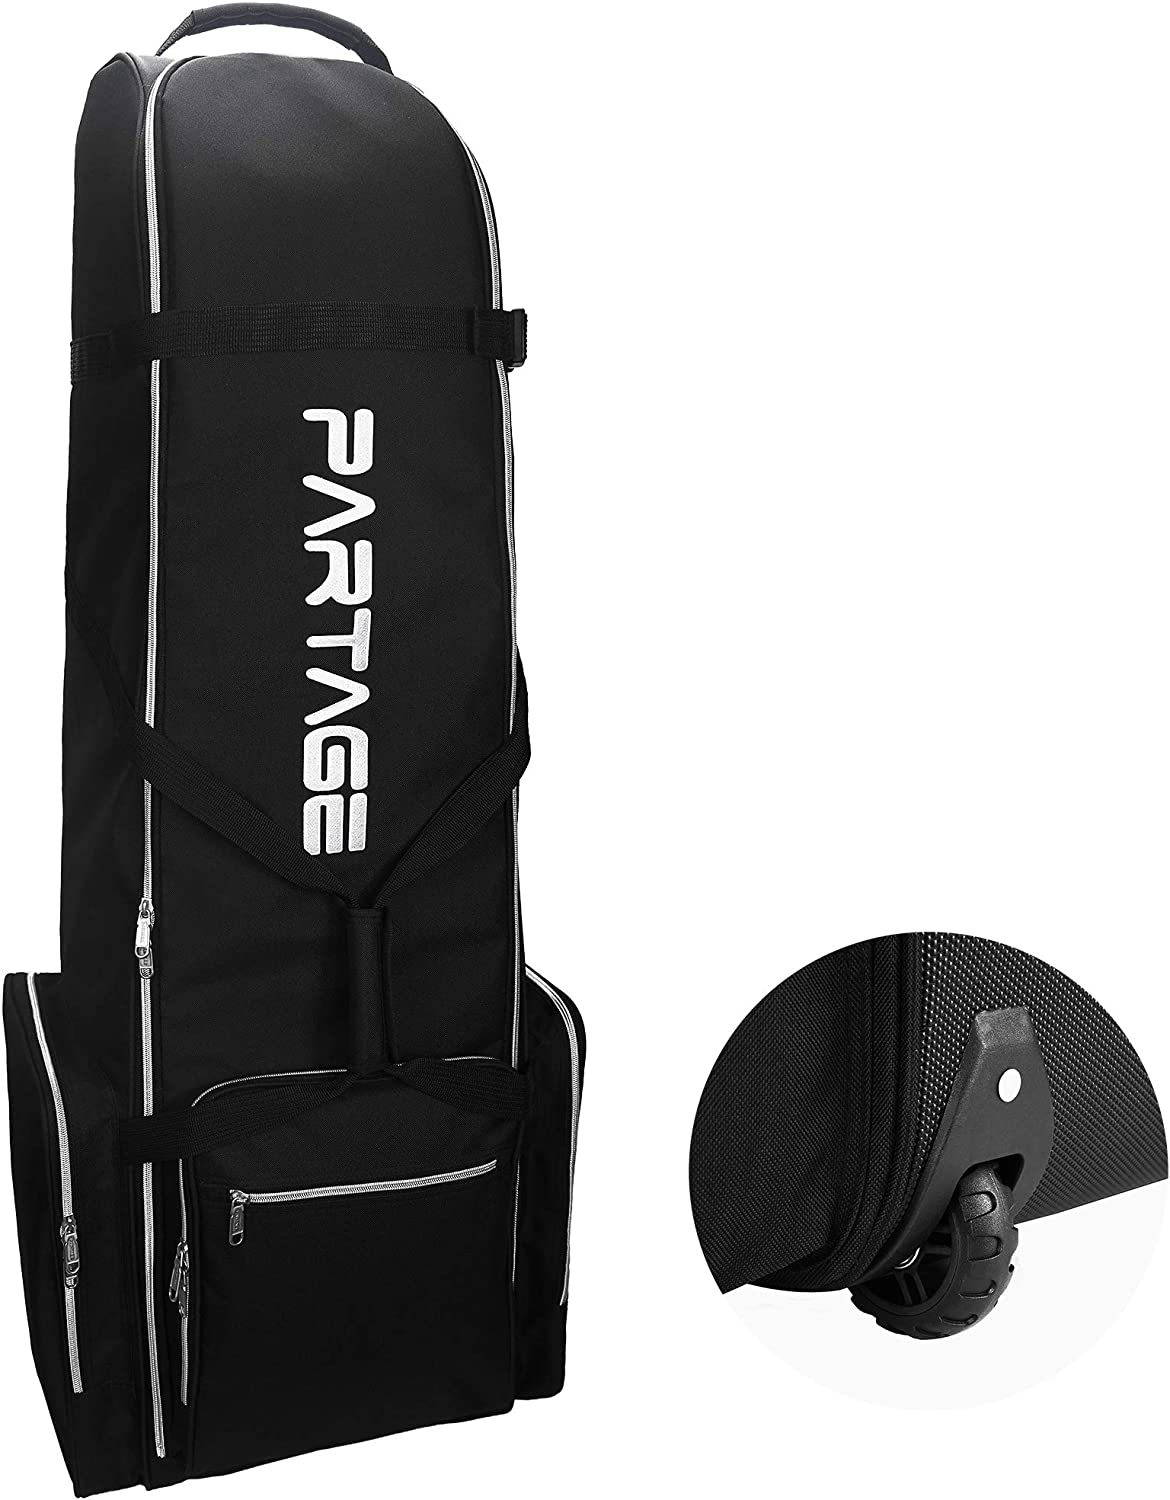 Partage wheels golf travel bag for airlines